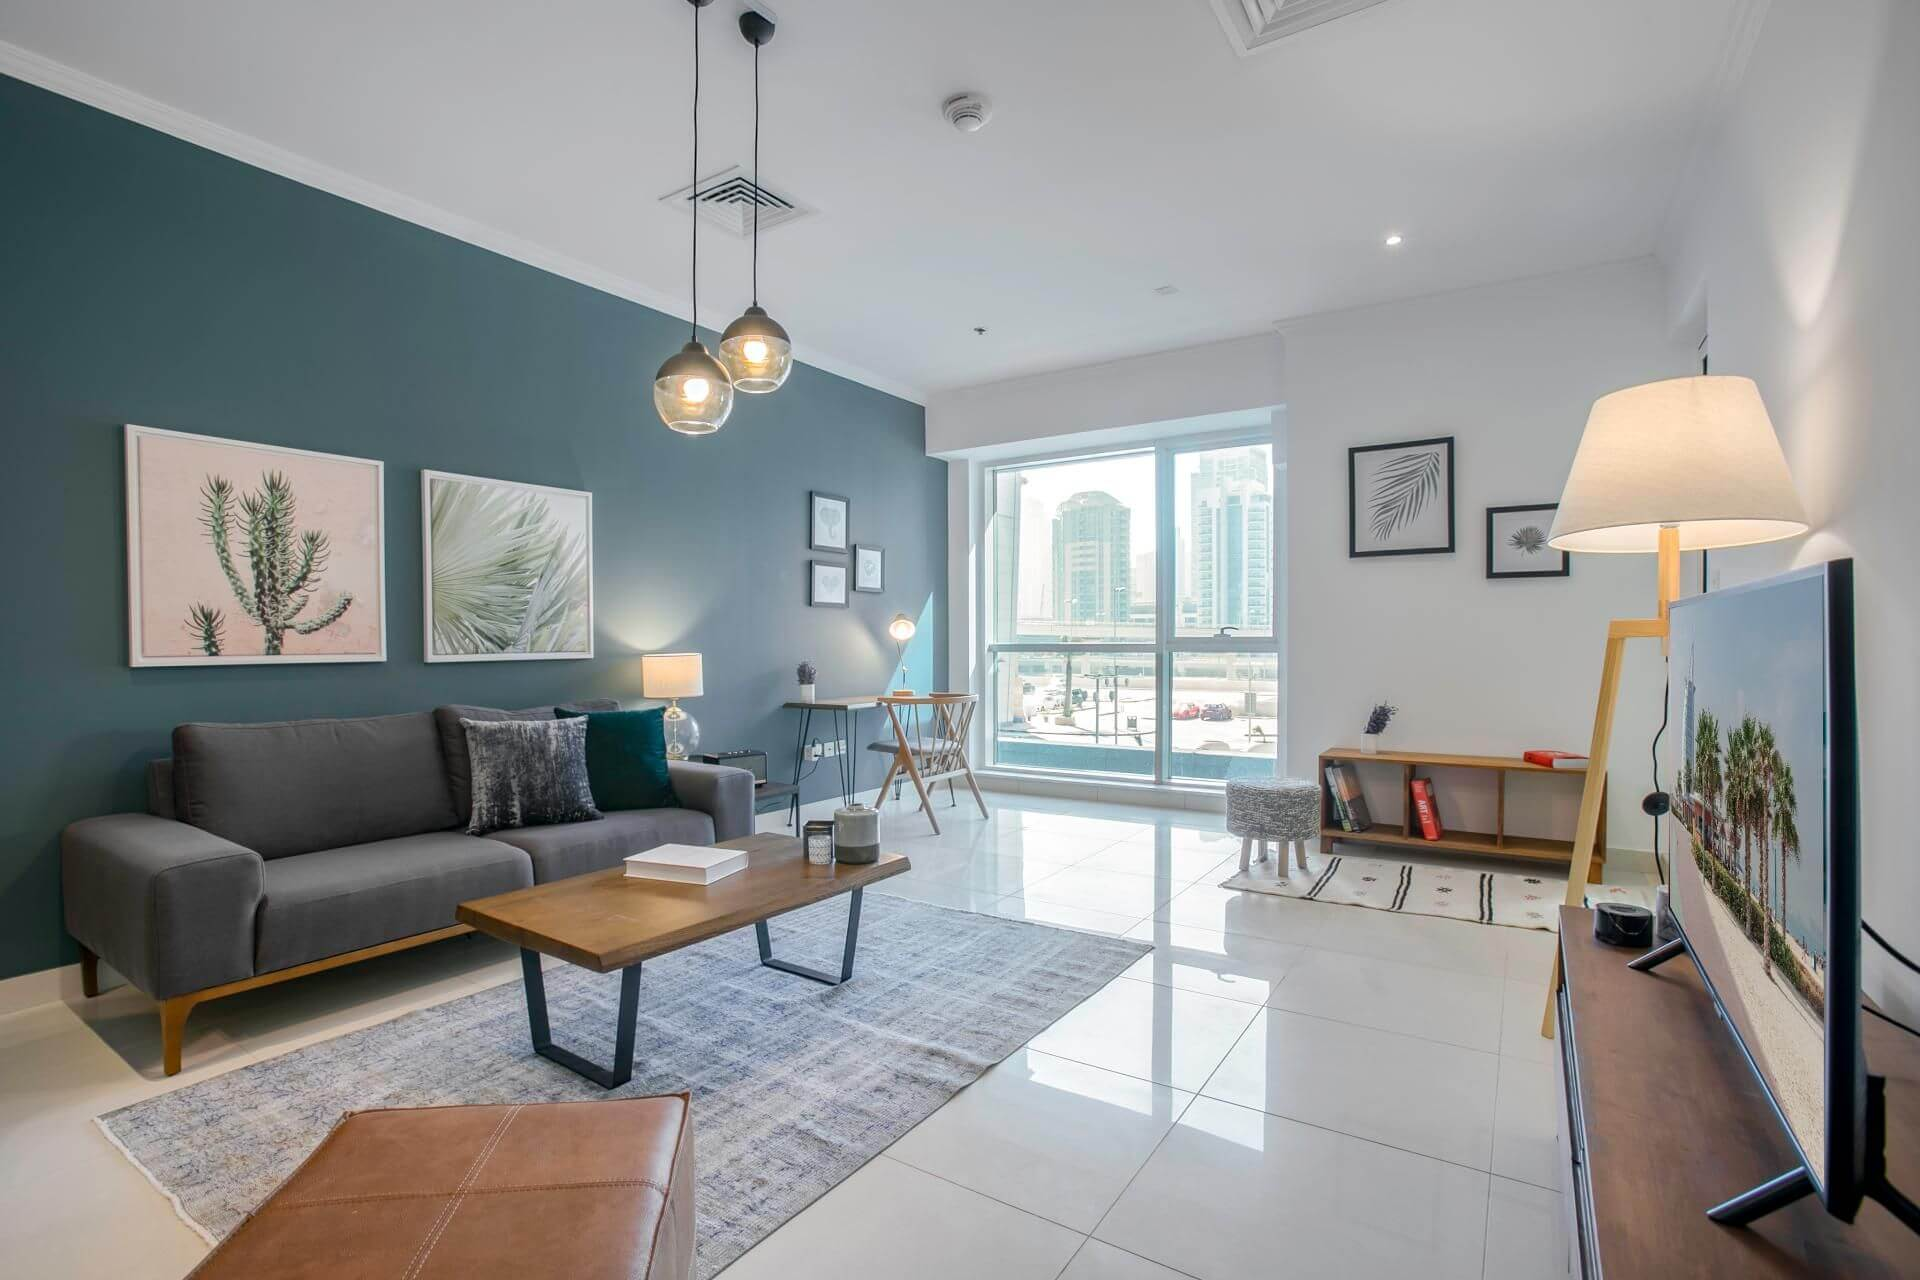 bright and spacious living room in Dubai designed by the property management company Blueground